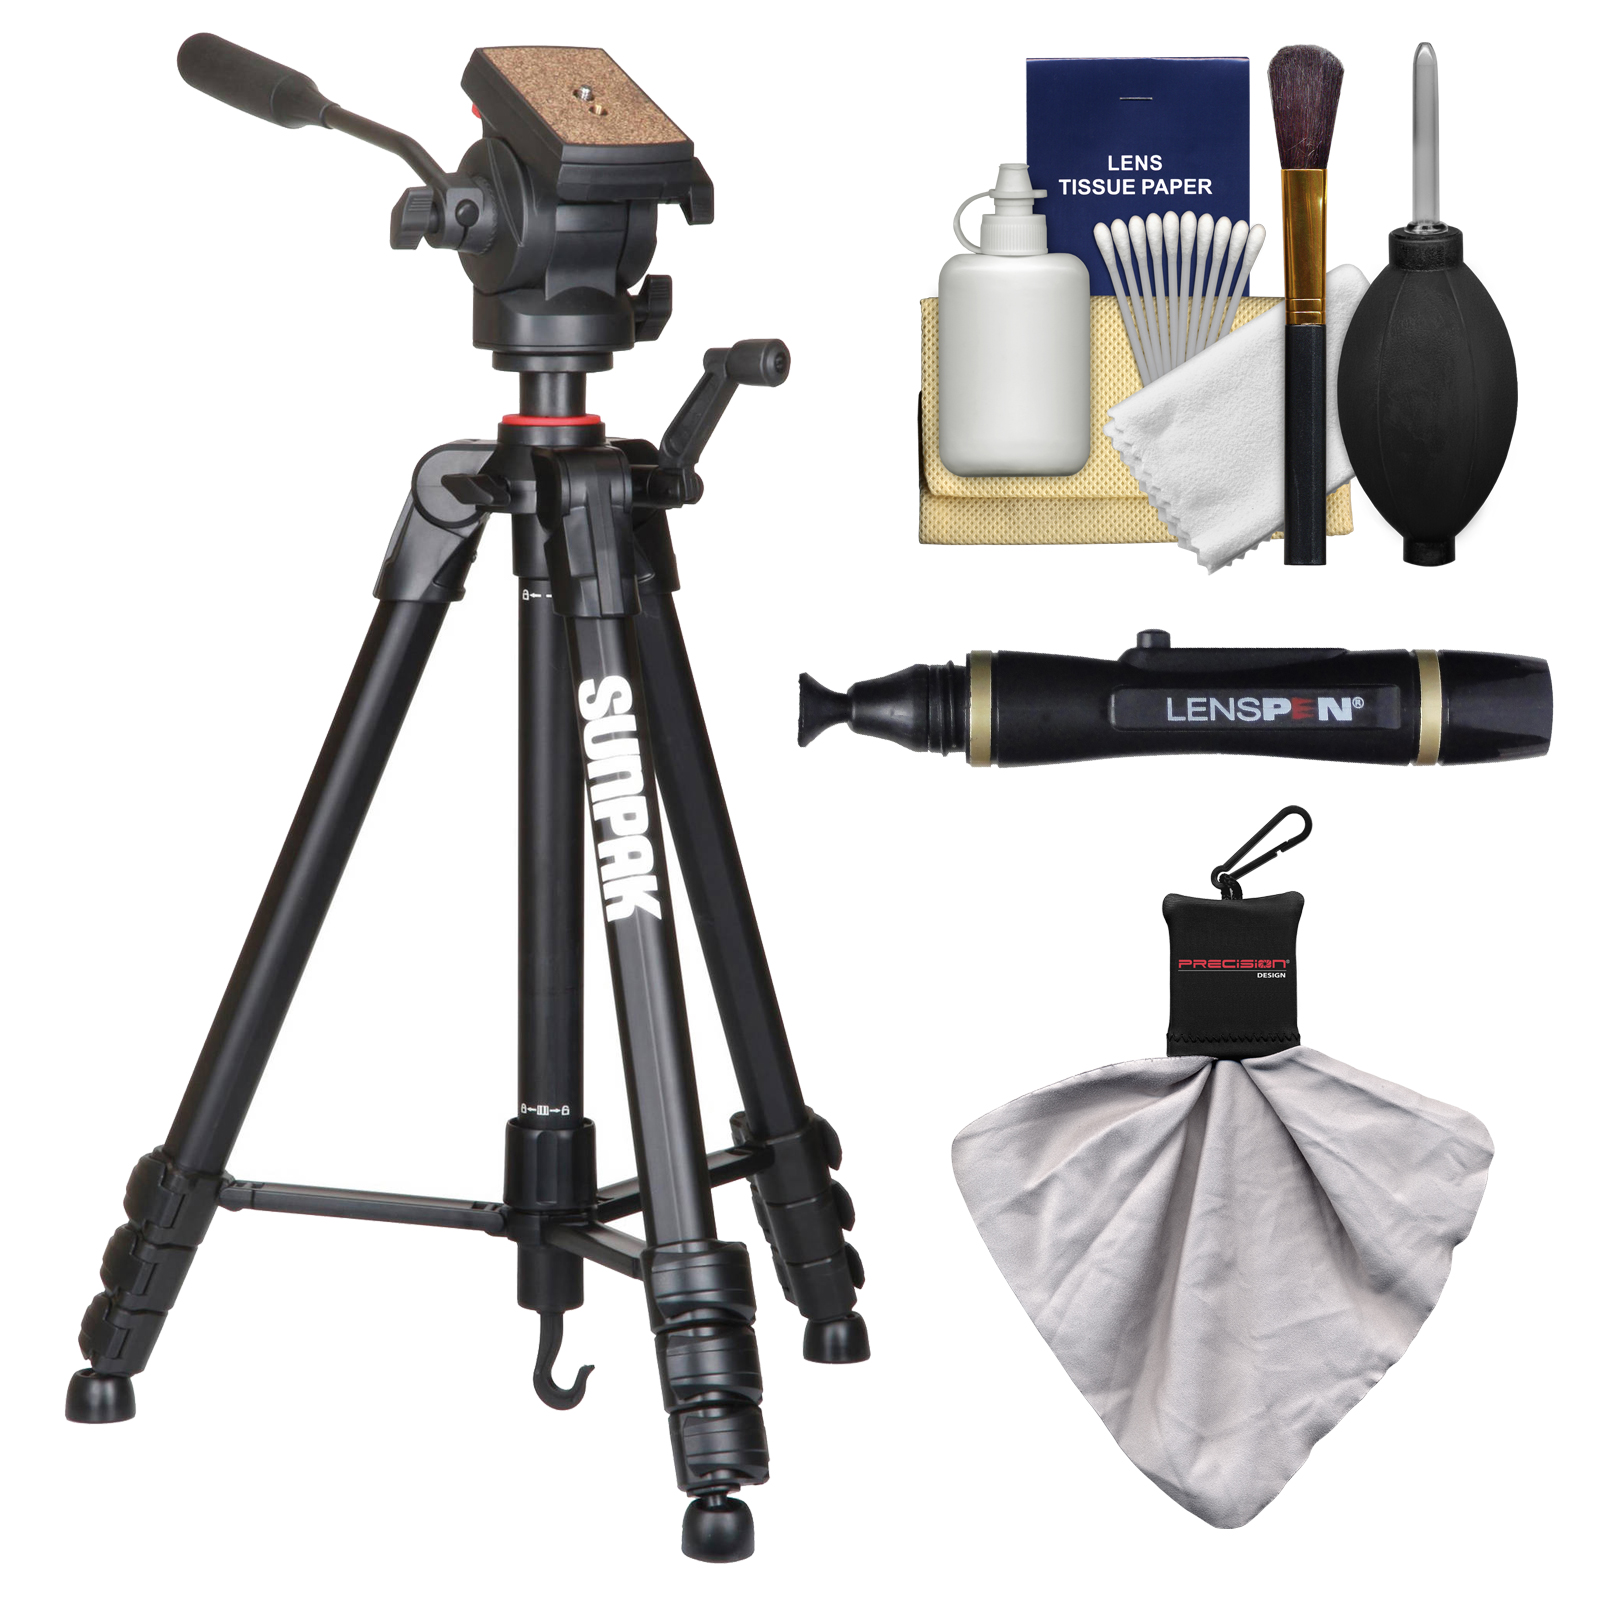 "Sunpak 65"" Pro M4 Heavy Duty Video Tripod with Fluid Head & Case with Lenspen + Cleaning Kit"